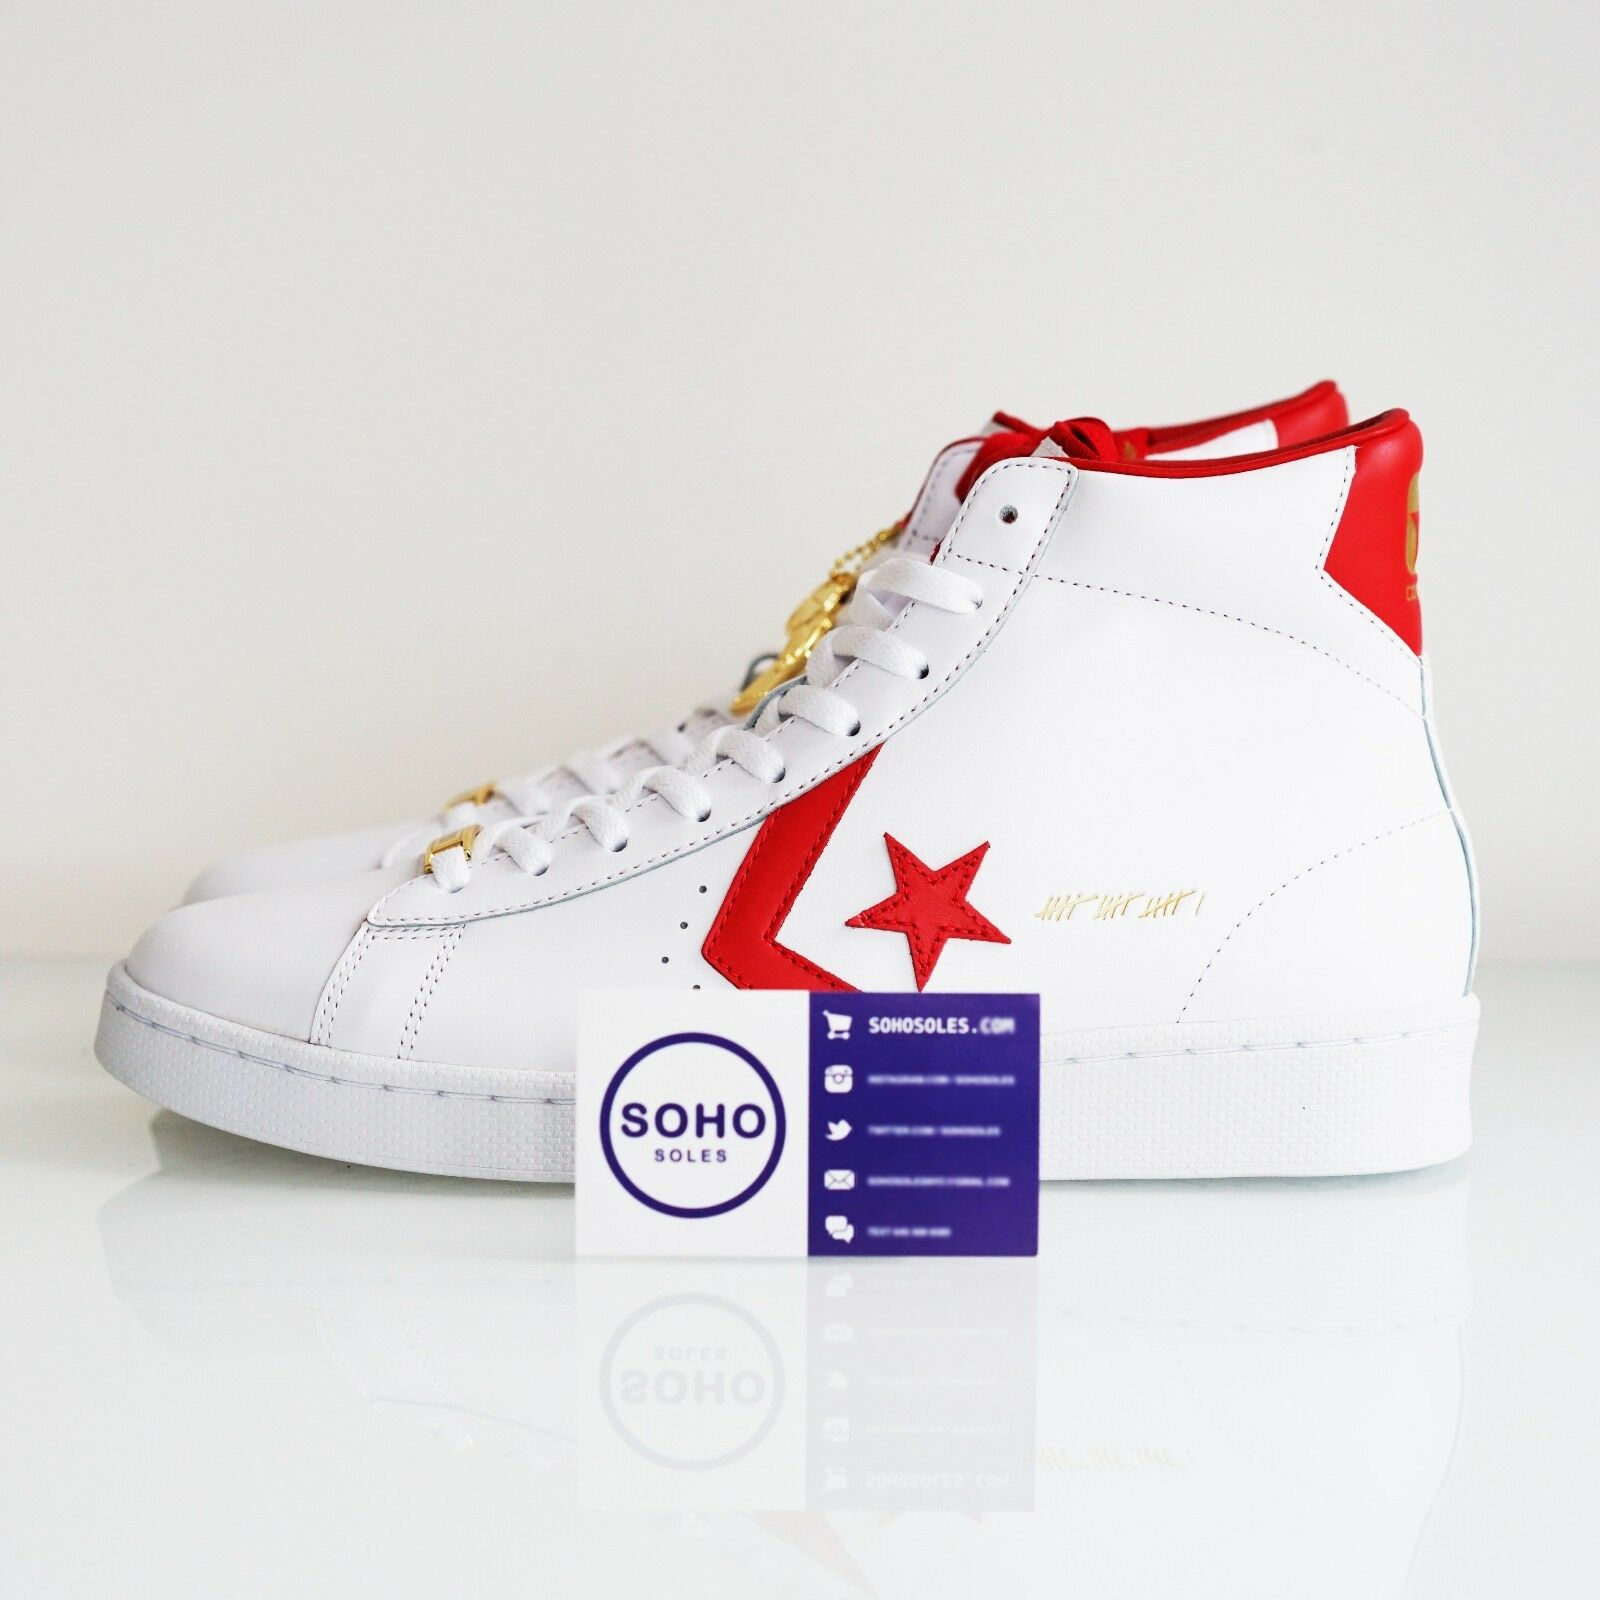 Converse Pro Leather The Scoop Champions Think 16 - Größe 8 10 11 - SHIPS NOW